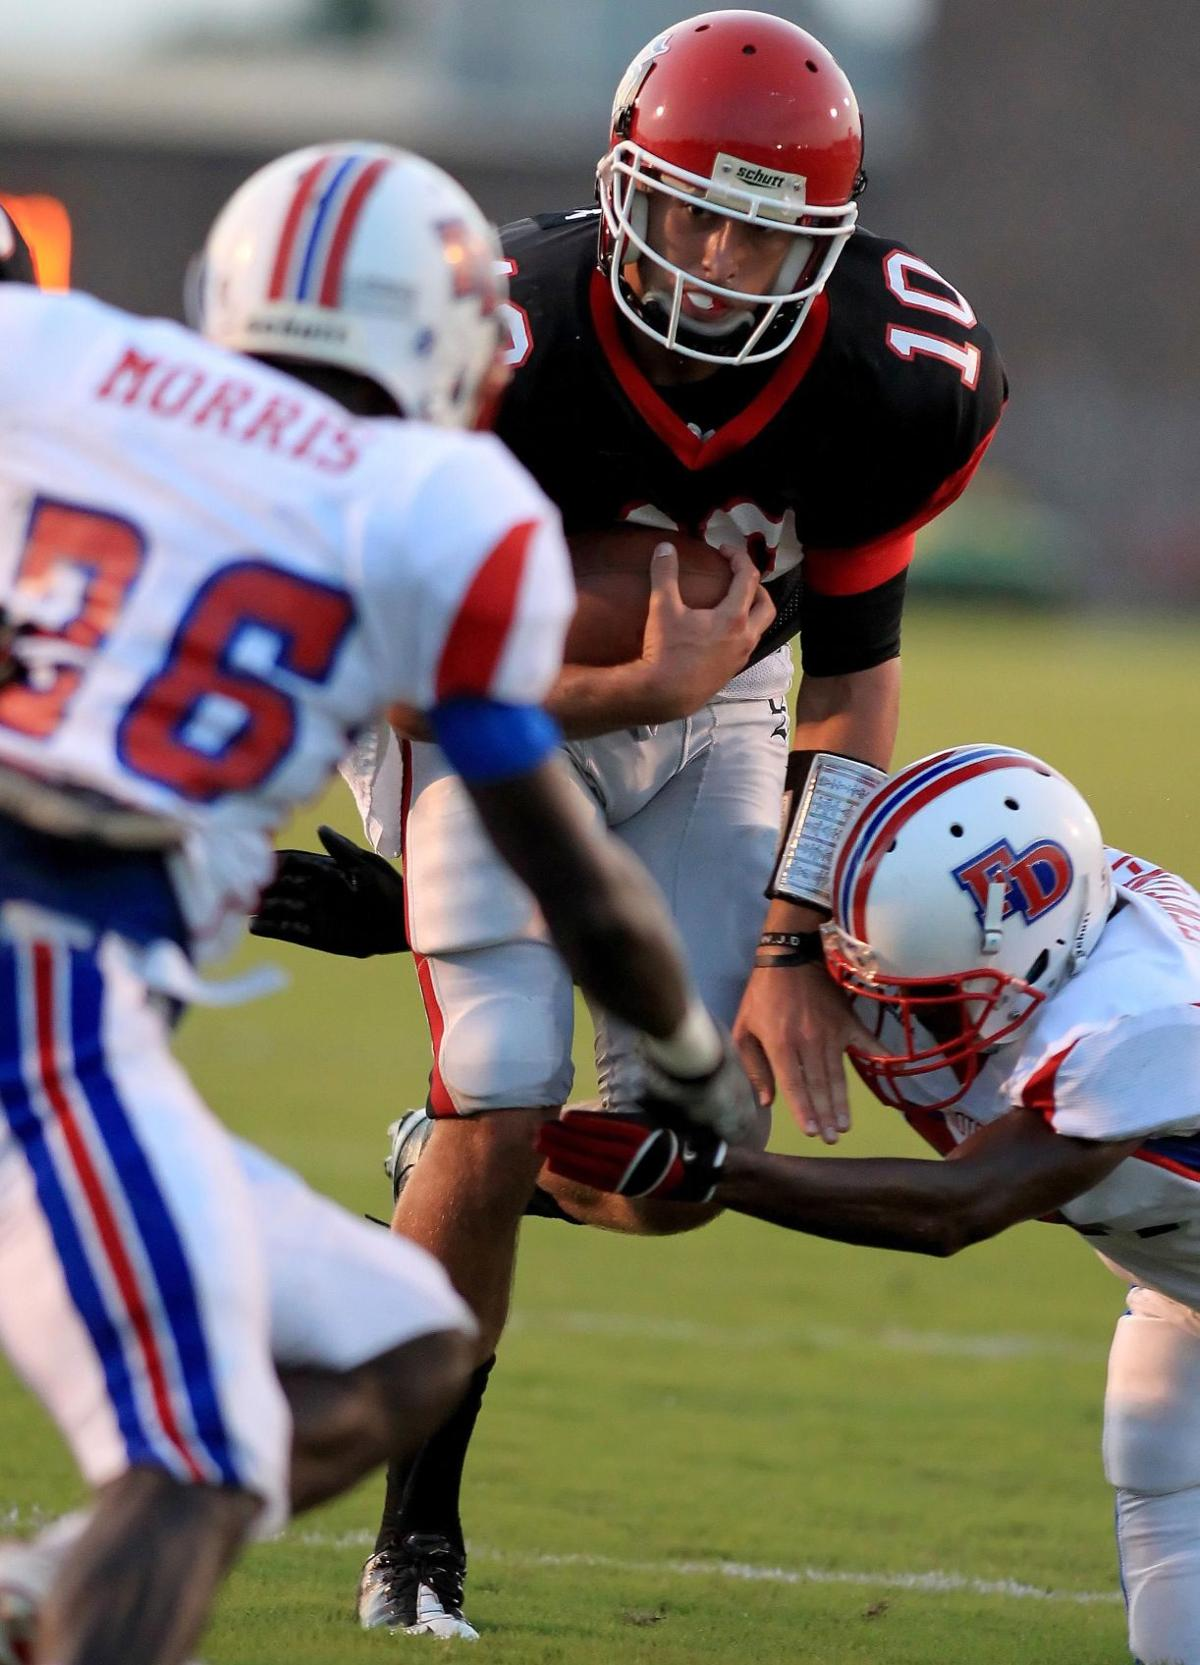 Park powers Knights Stratford holds off Fort Dorchester's late rally